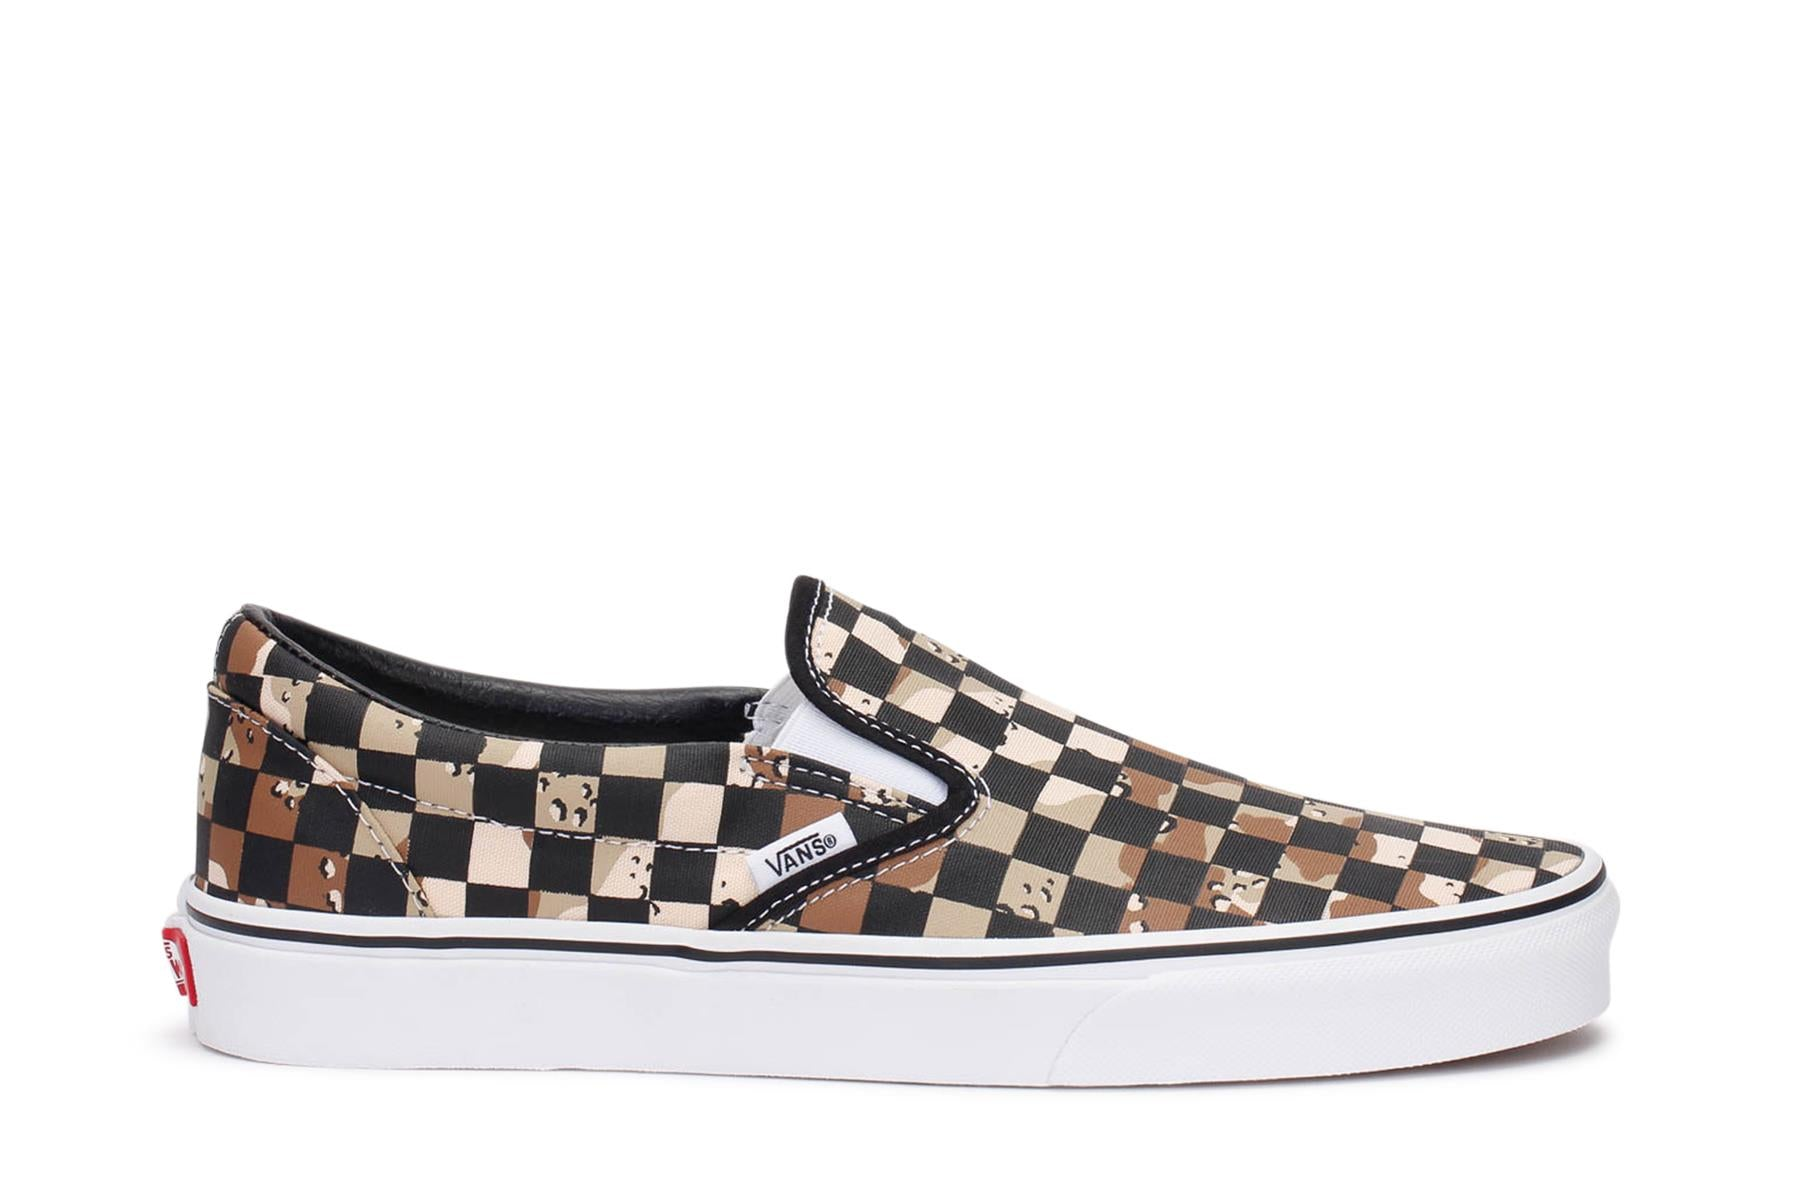 vans-mens-classic-slip-on-checkerboard-sneakers-camo-desert-true-white-vn0a4bv3v4p-main